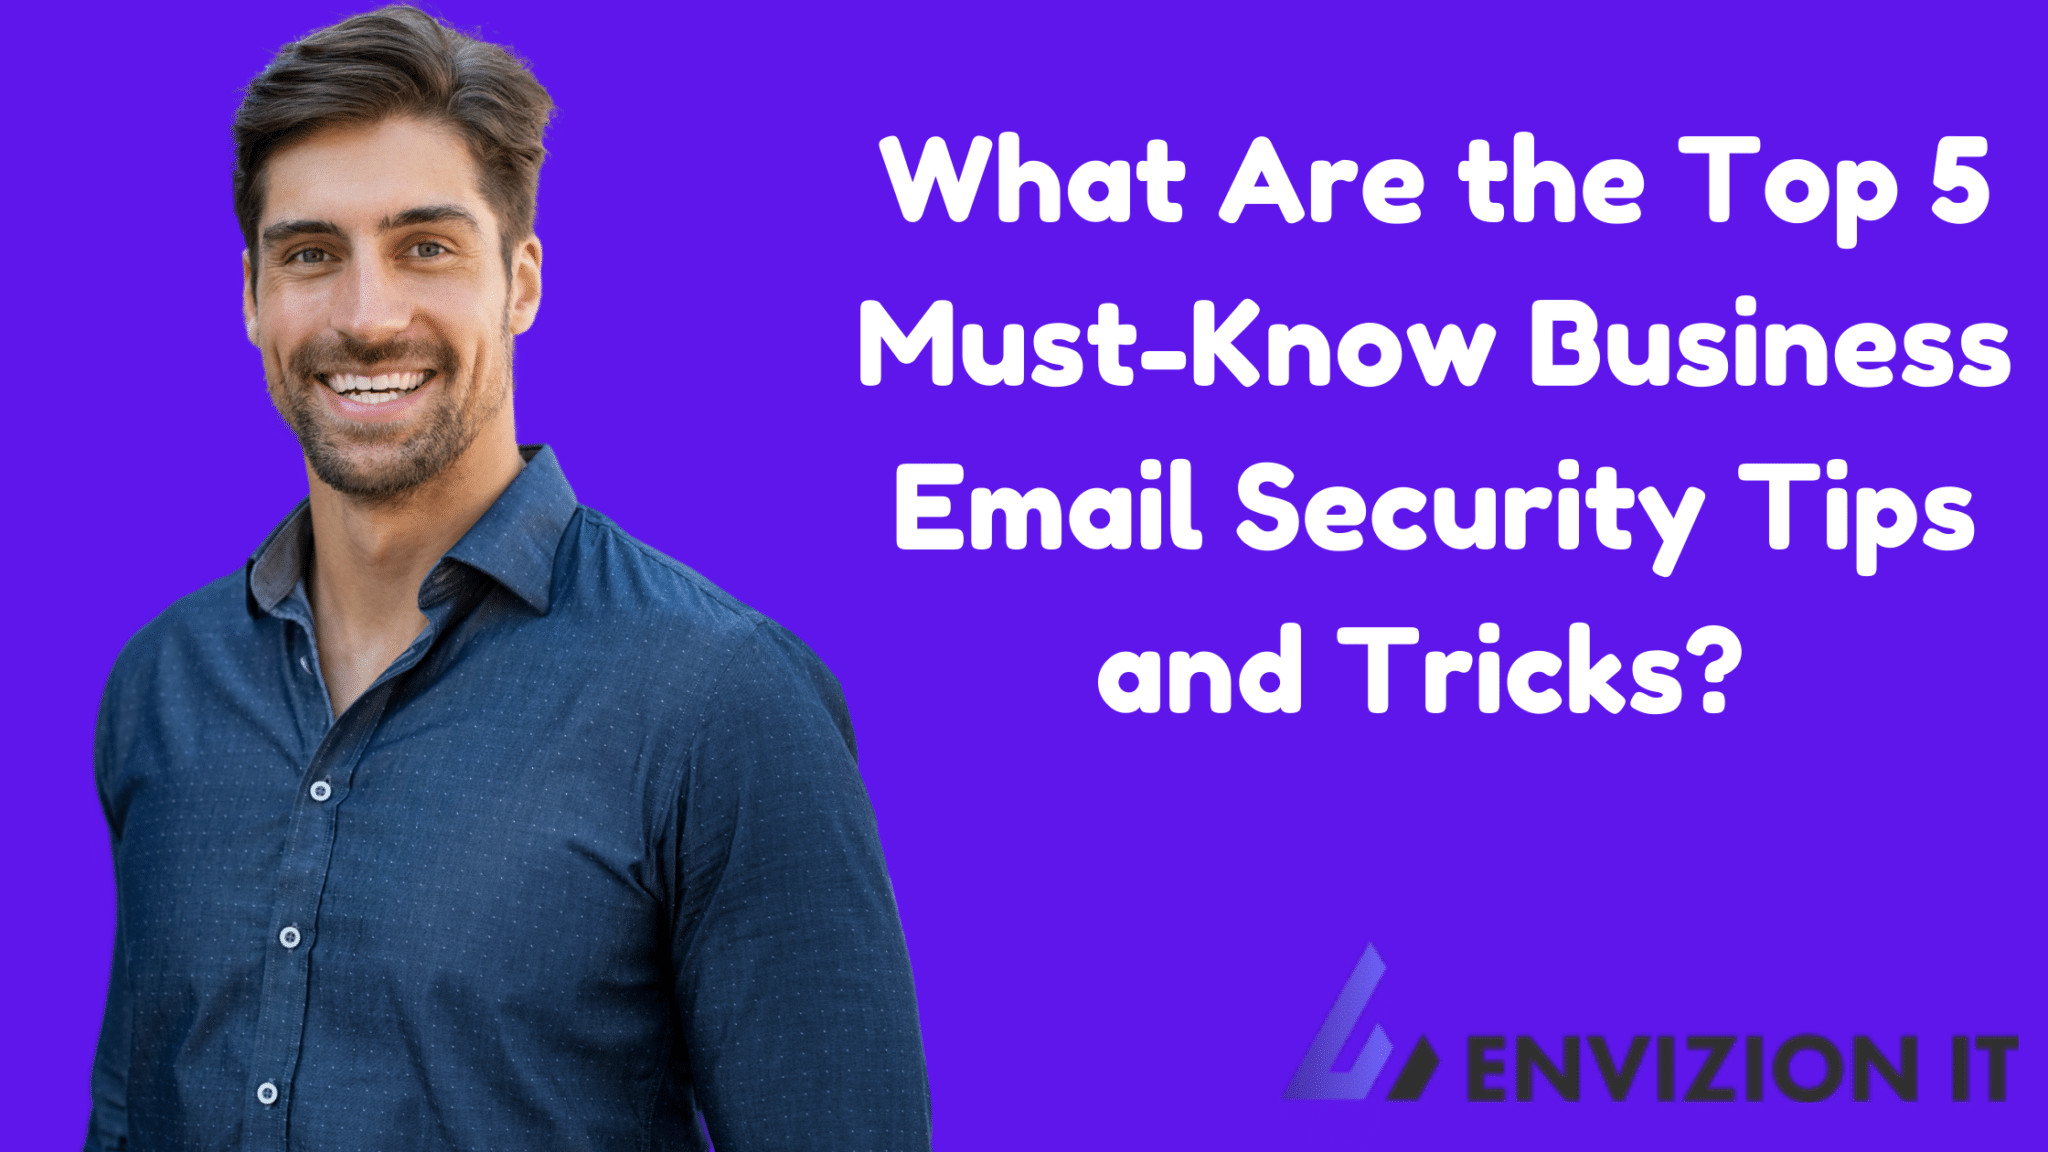 What Are the Top 5 Must-Know Business Email Security Tips and Tricks